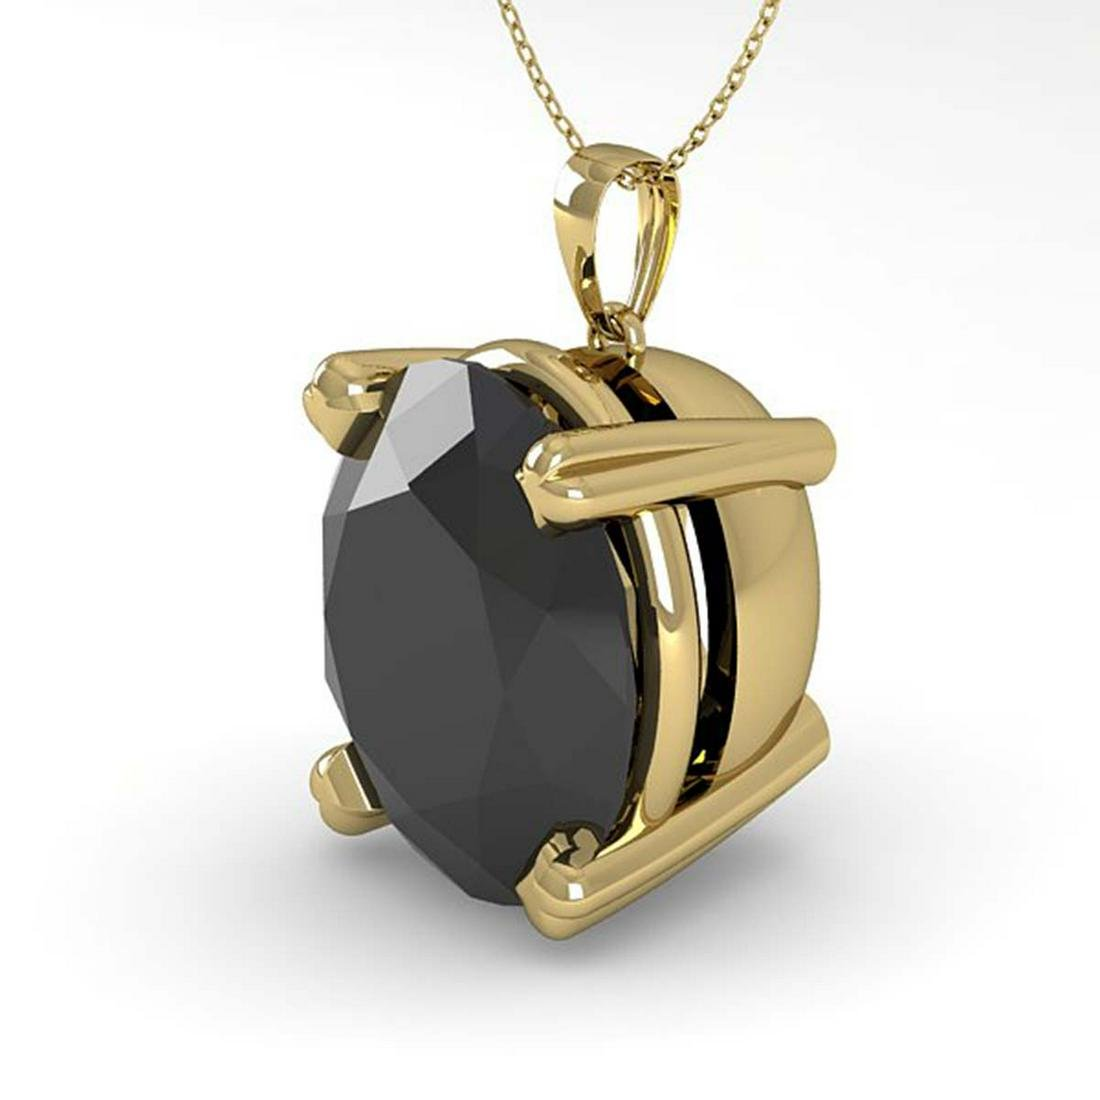 9.0 ctw Oval Black Diamond Necklace 18K Yellow Gold